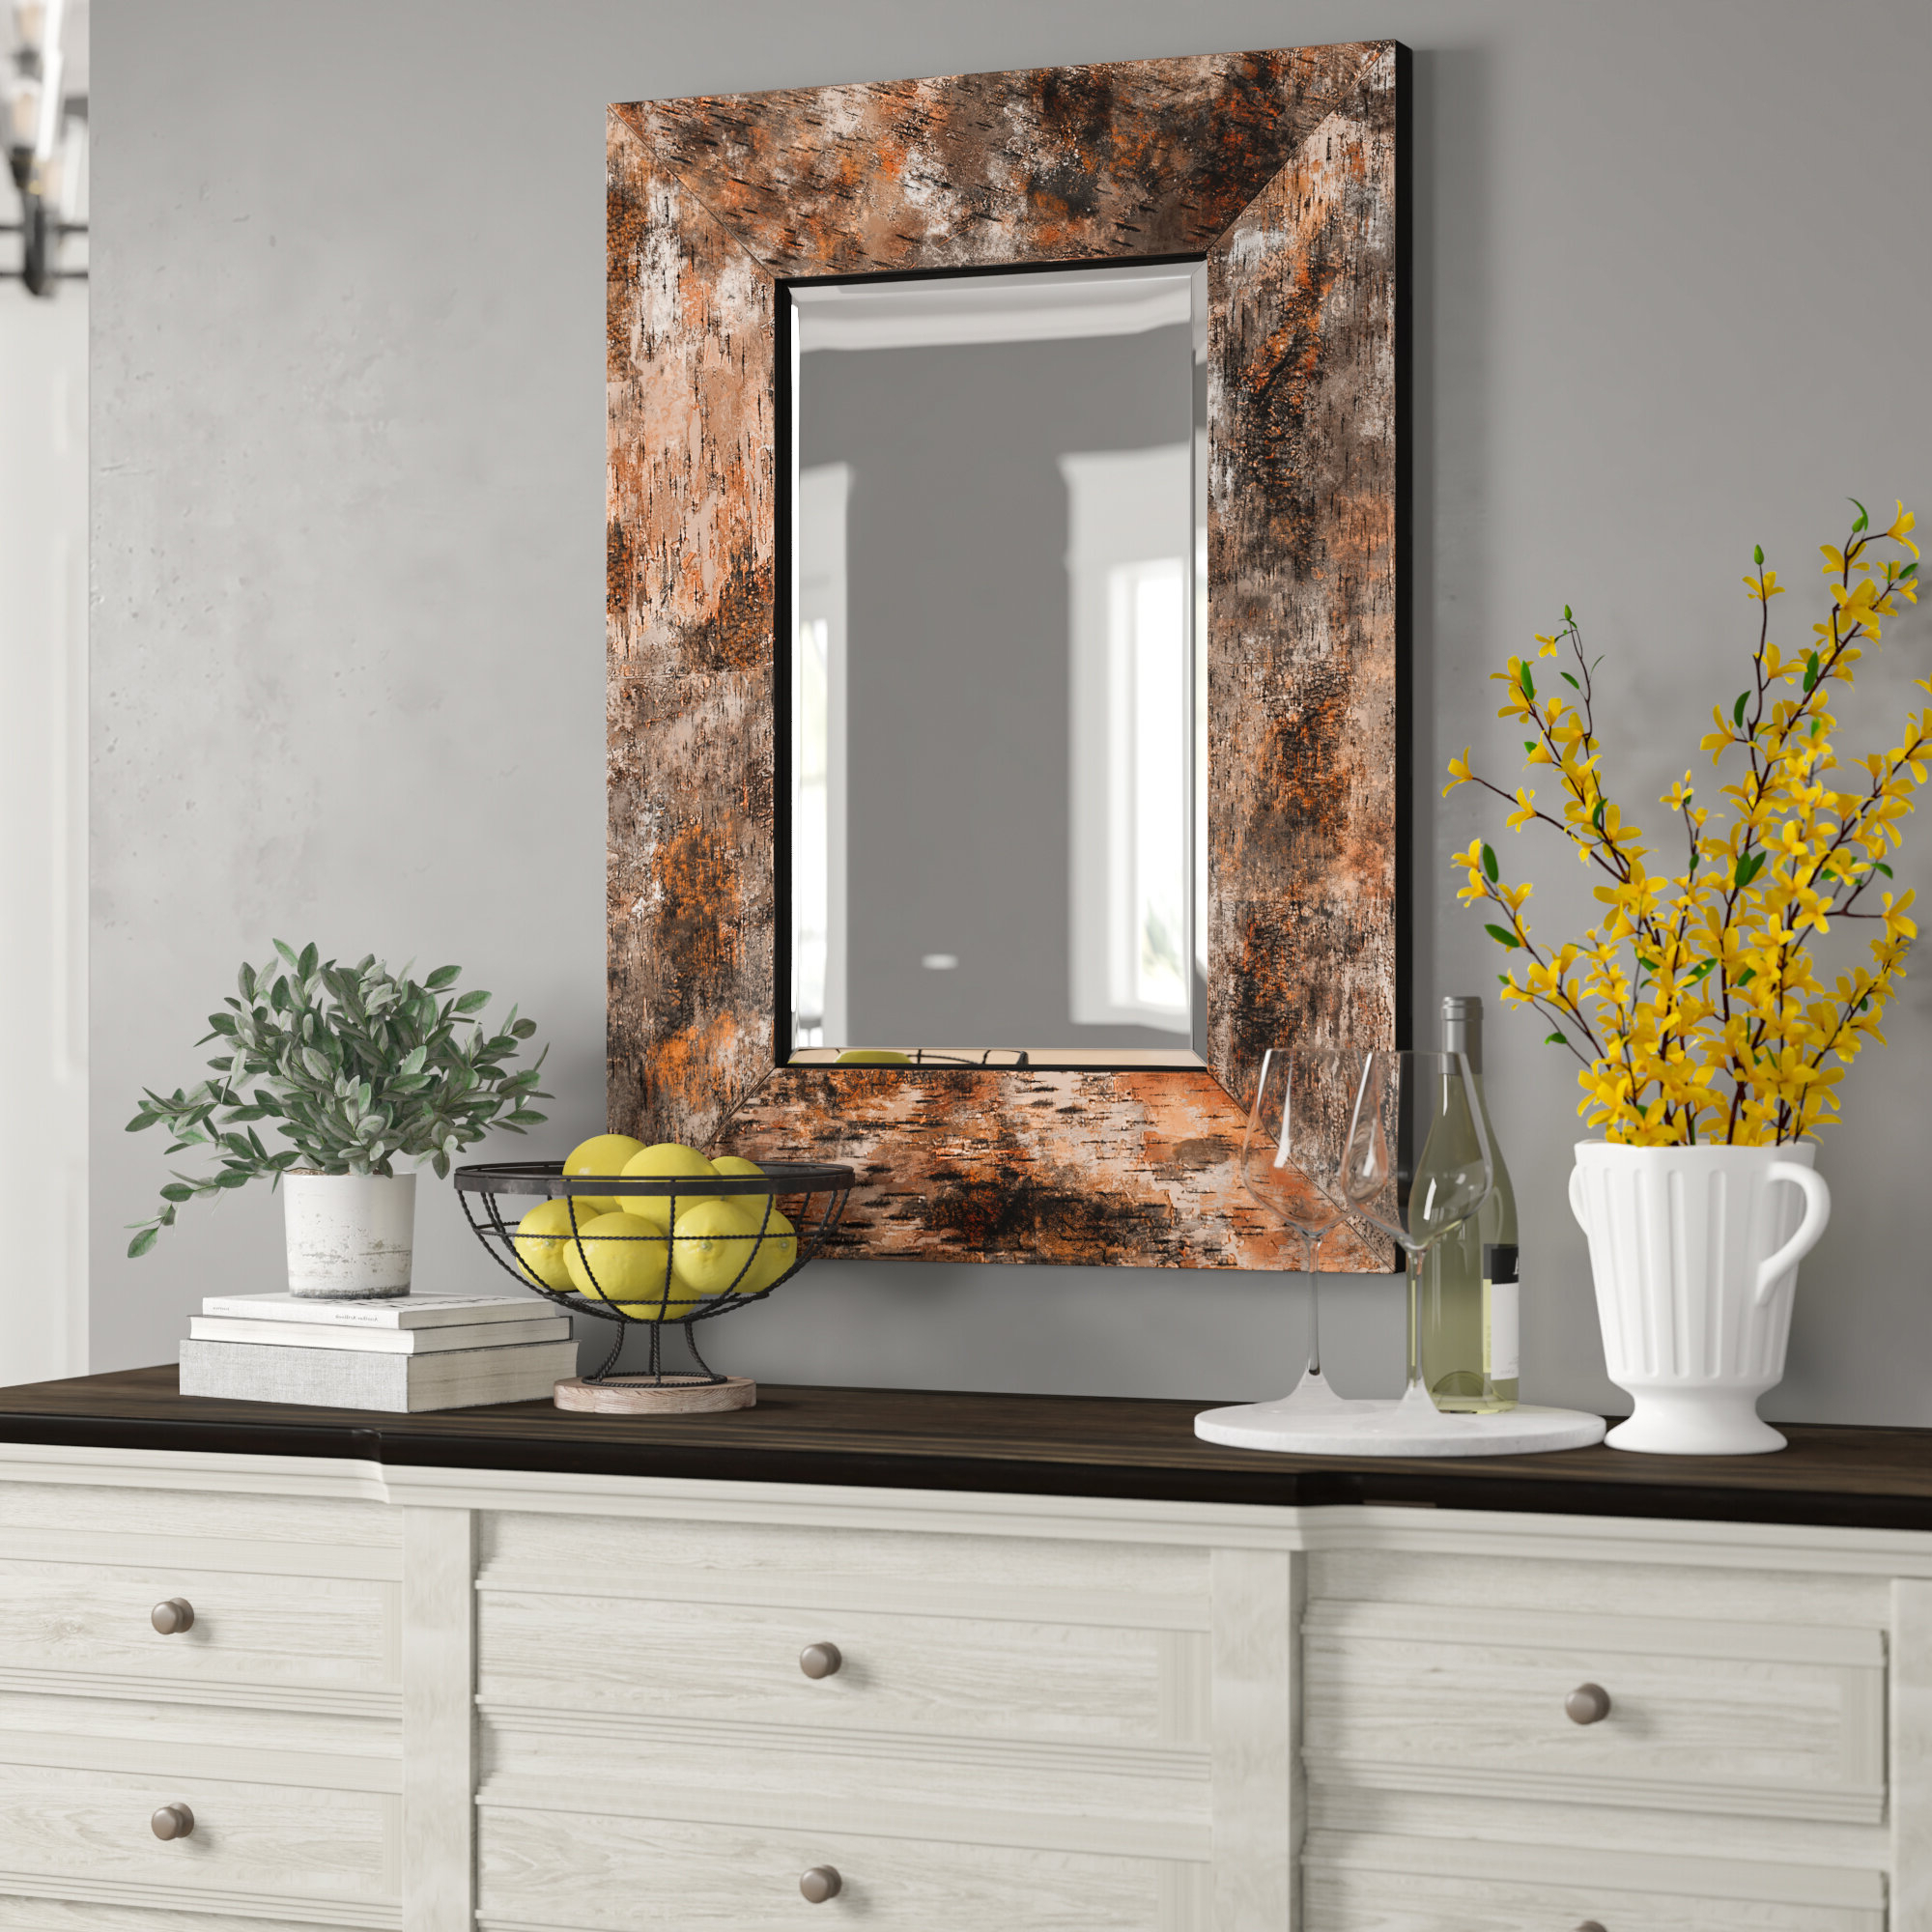 Giorgio Accent Mirror Within Well Known Booth Reclaimed Wall Mirrors Accent (View 15 of 20)